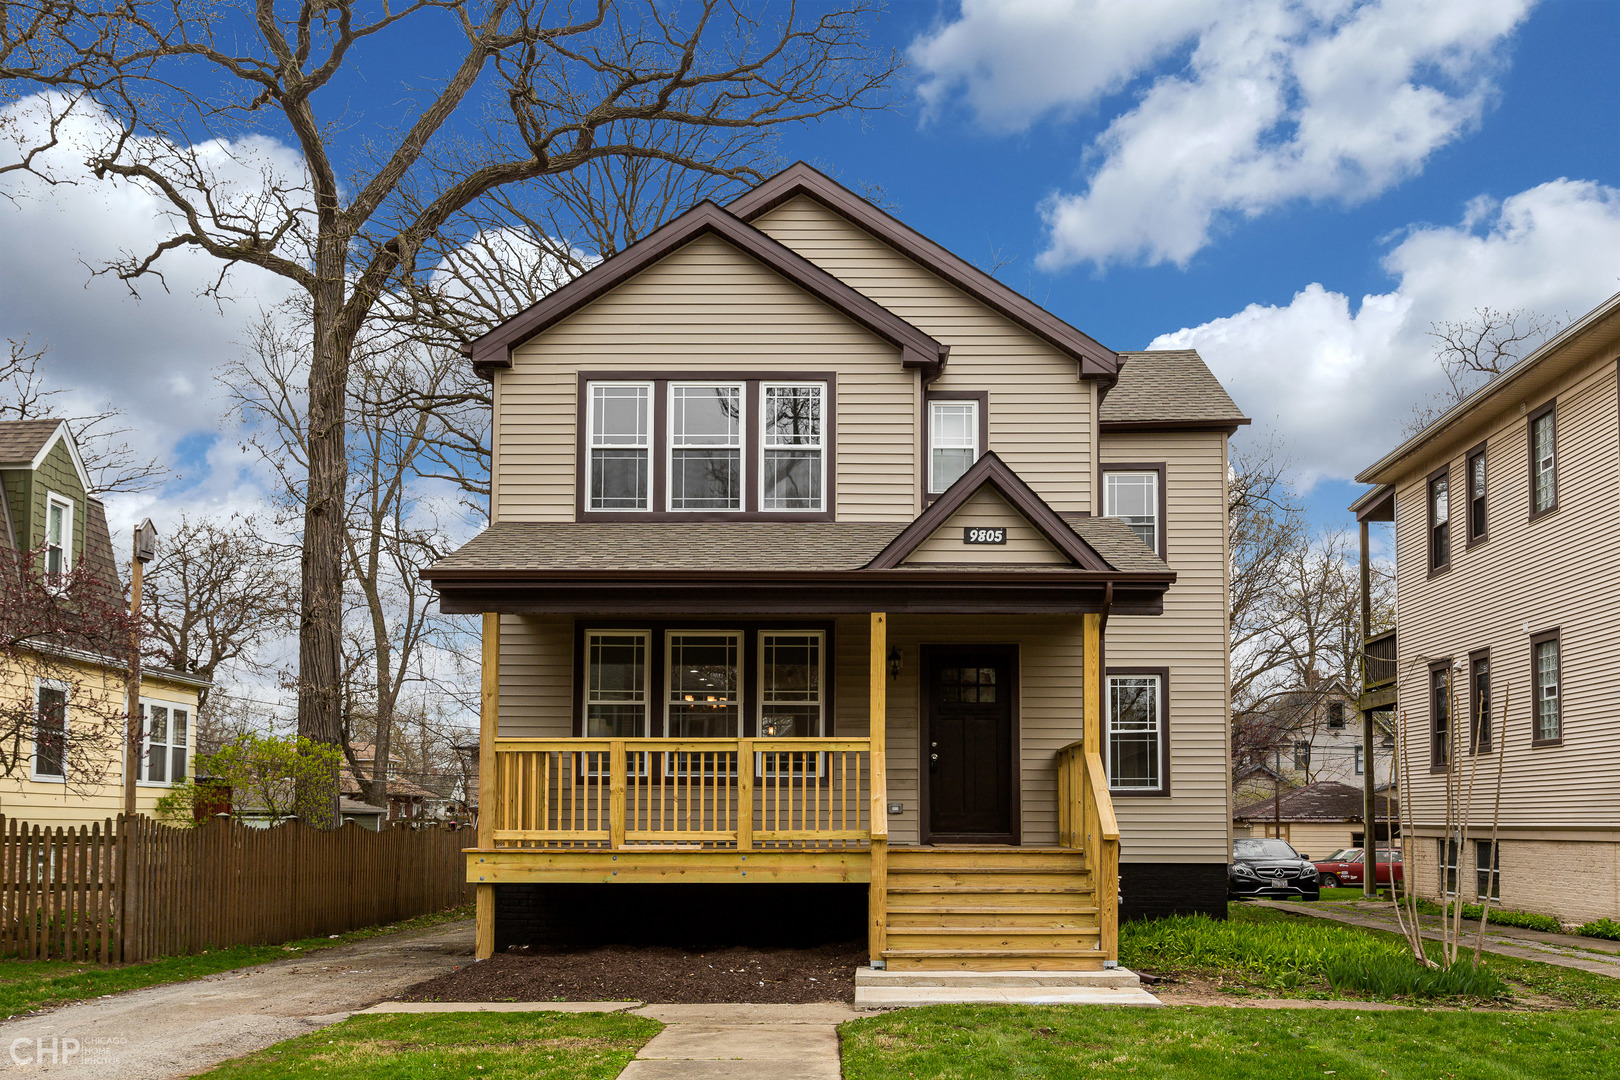 Photo of 9805 VANDERPOEL Chicago IL 60643